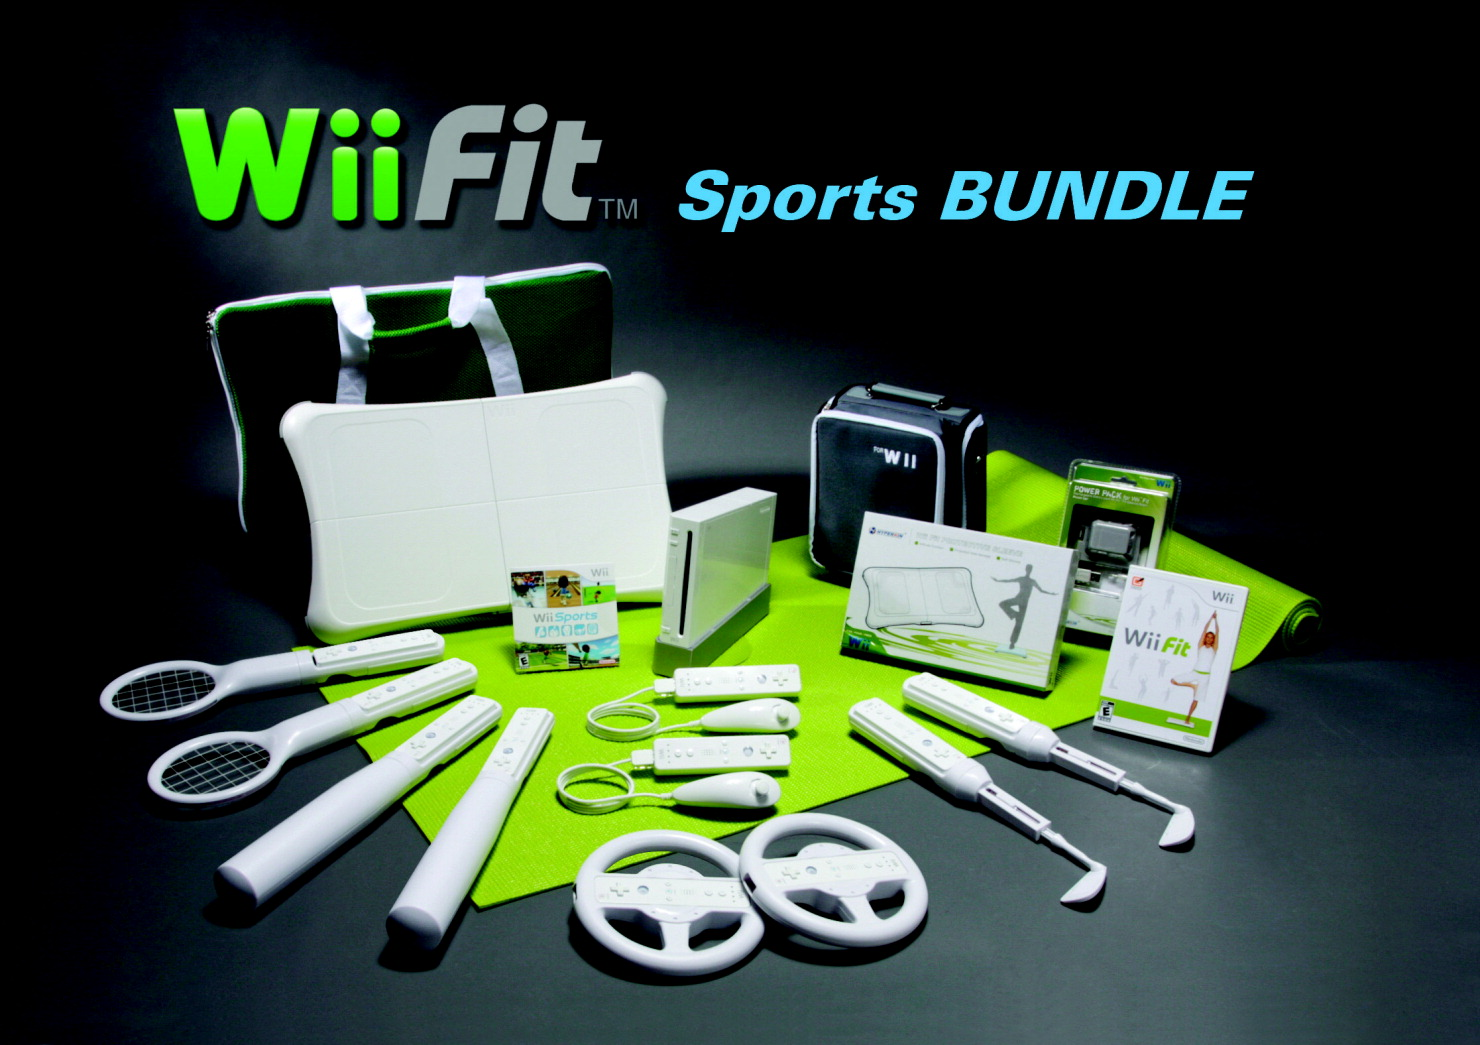 WiiFit Sports Bundle-Refurbished